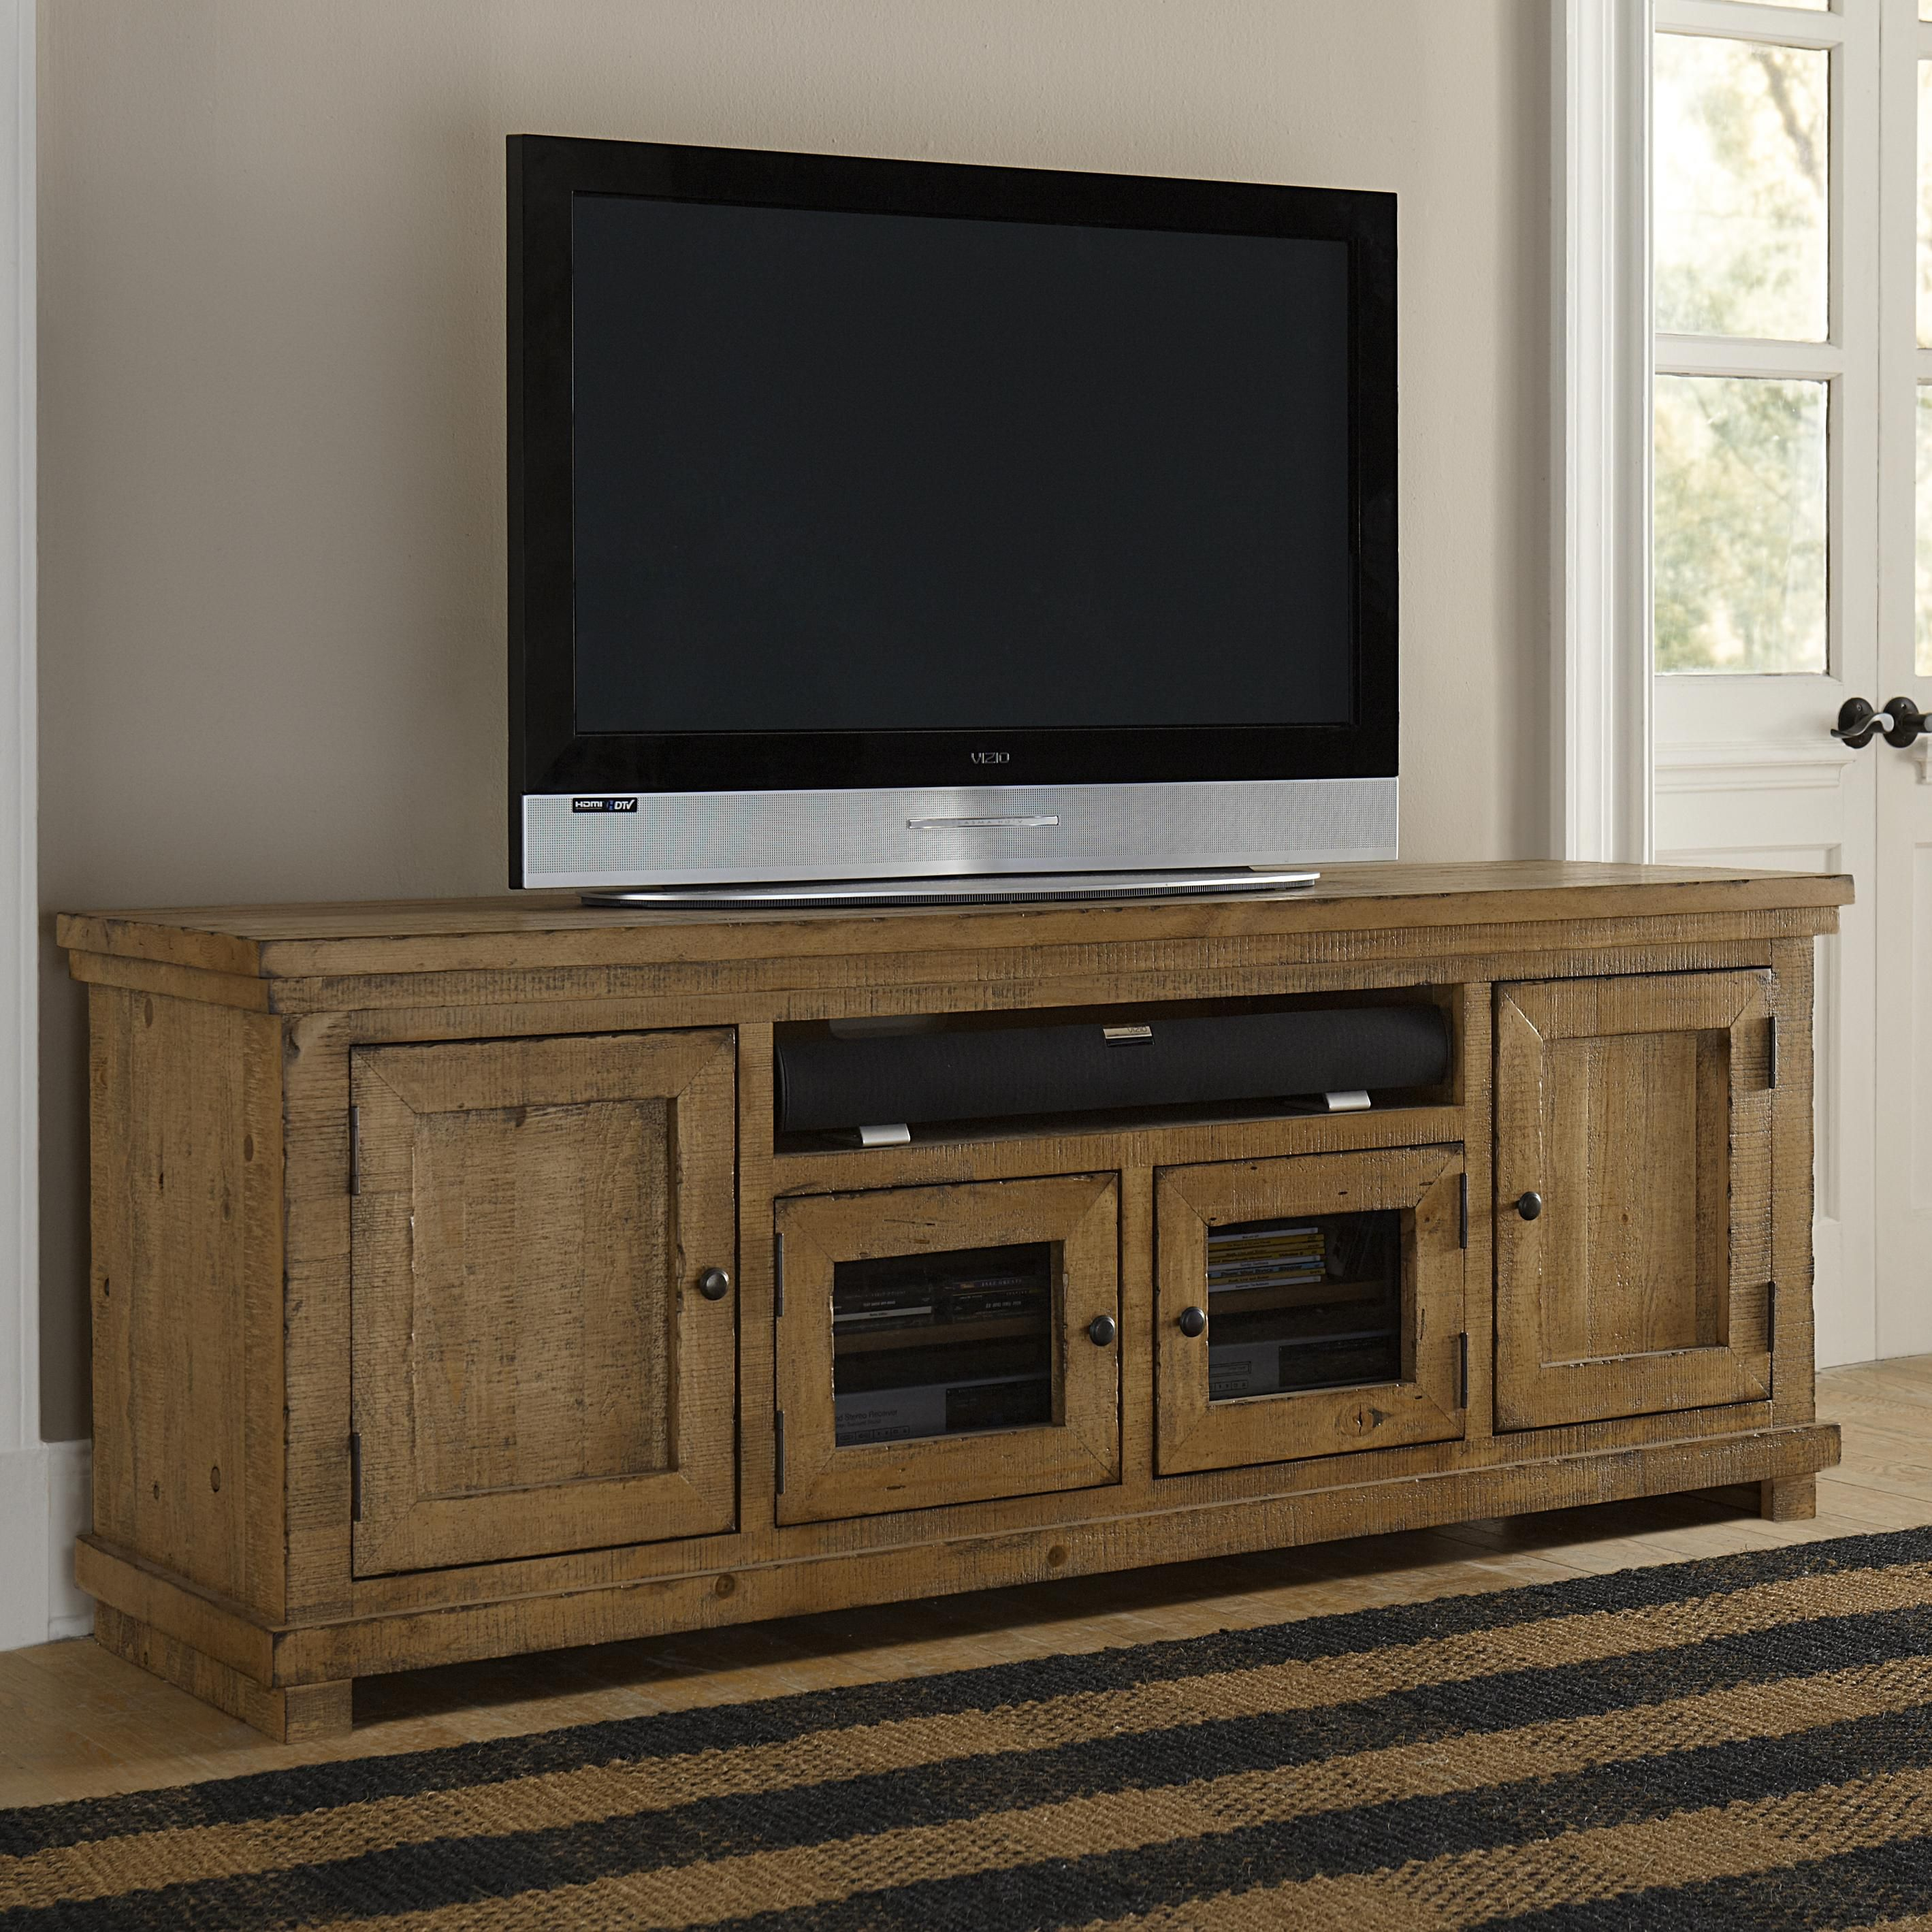 images about Living Room Furniture on Pinterest Broyhill